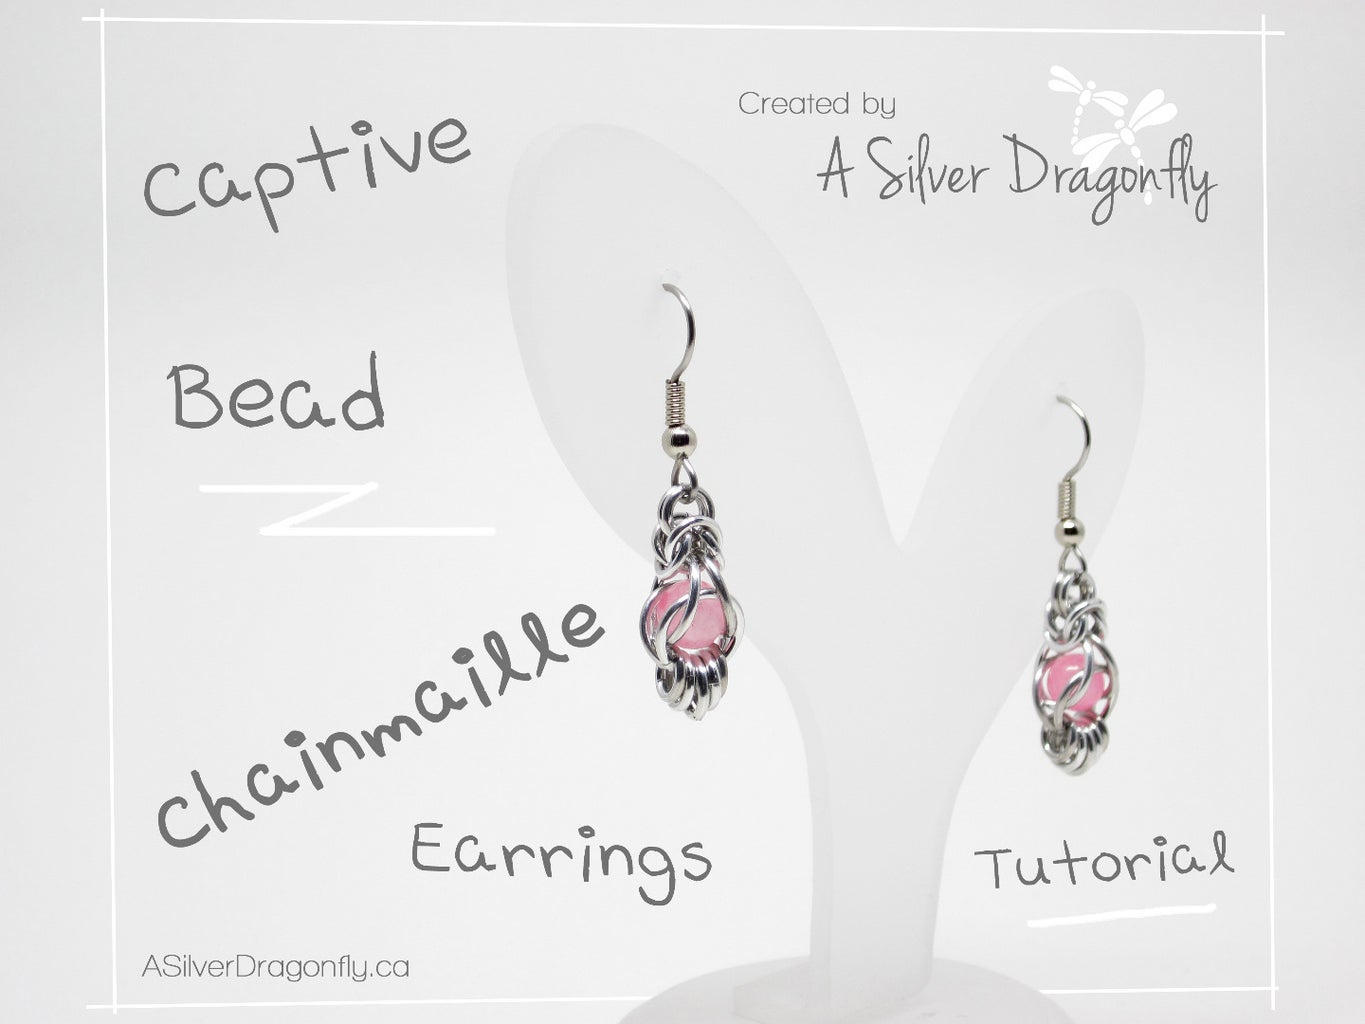 Captive Bead Chainmaille Earrings